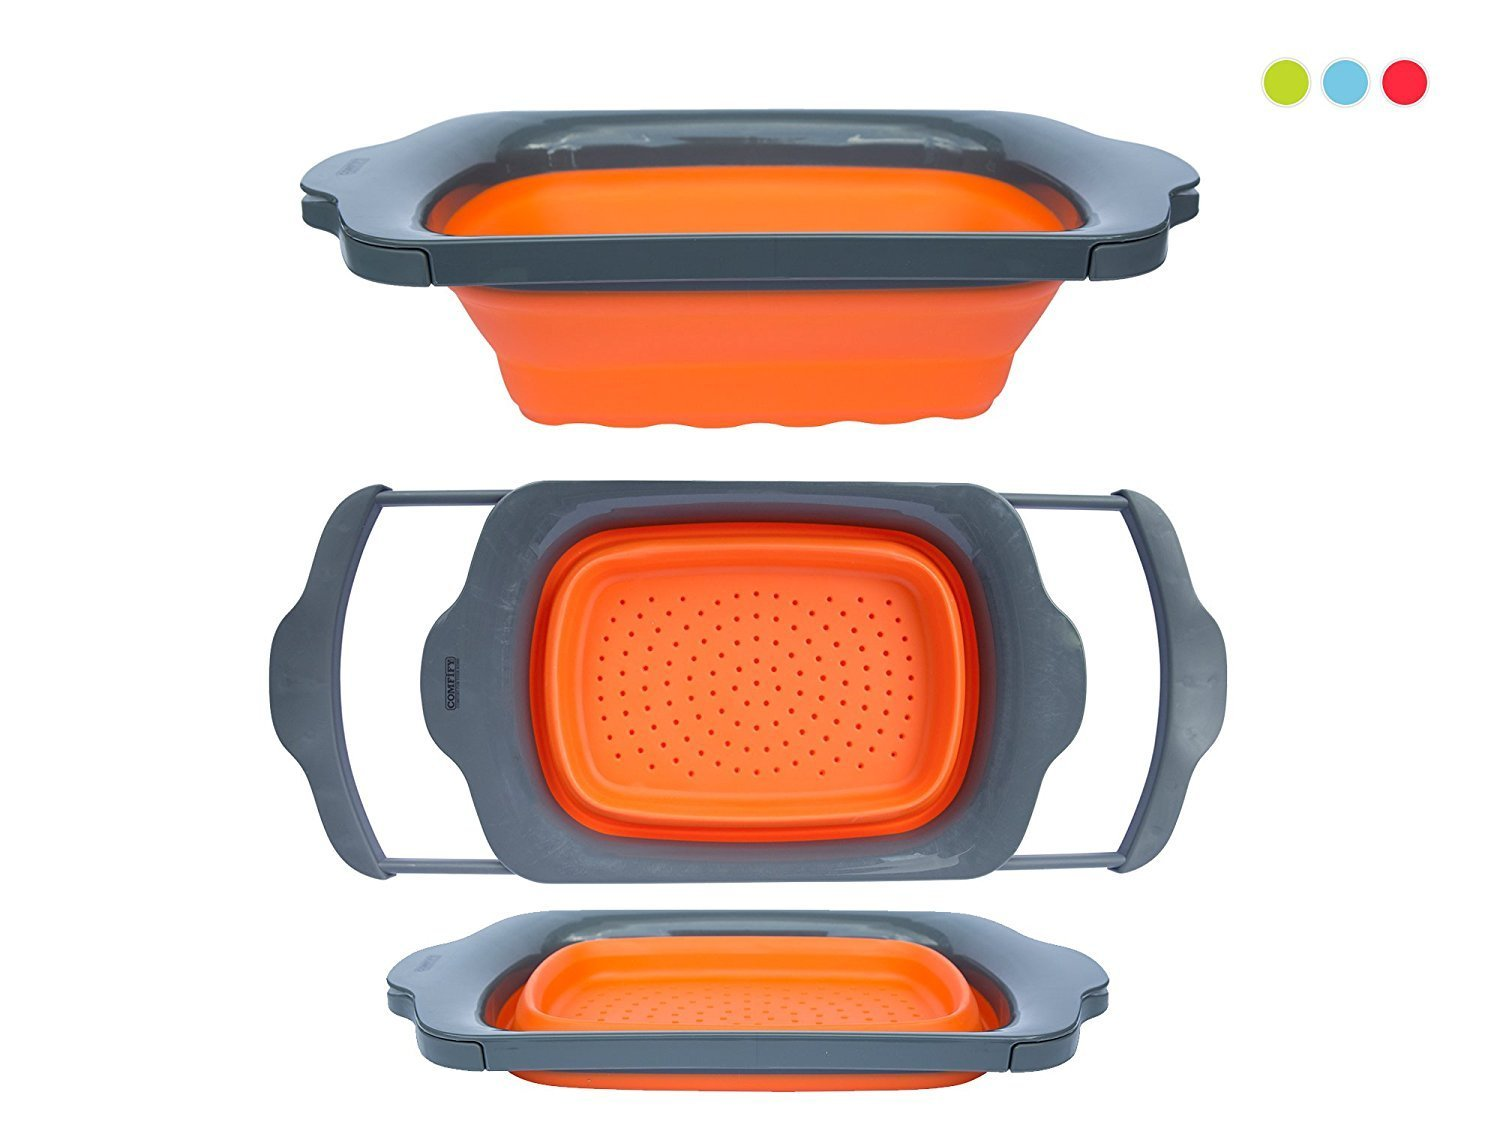 Click here to buy Collapsible Kitchen Colander Over the Sink Kitchen Strainer By Comfify 6-quart Capacity Progressive Collapsible Colander with Handle Orange... by Comfify.